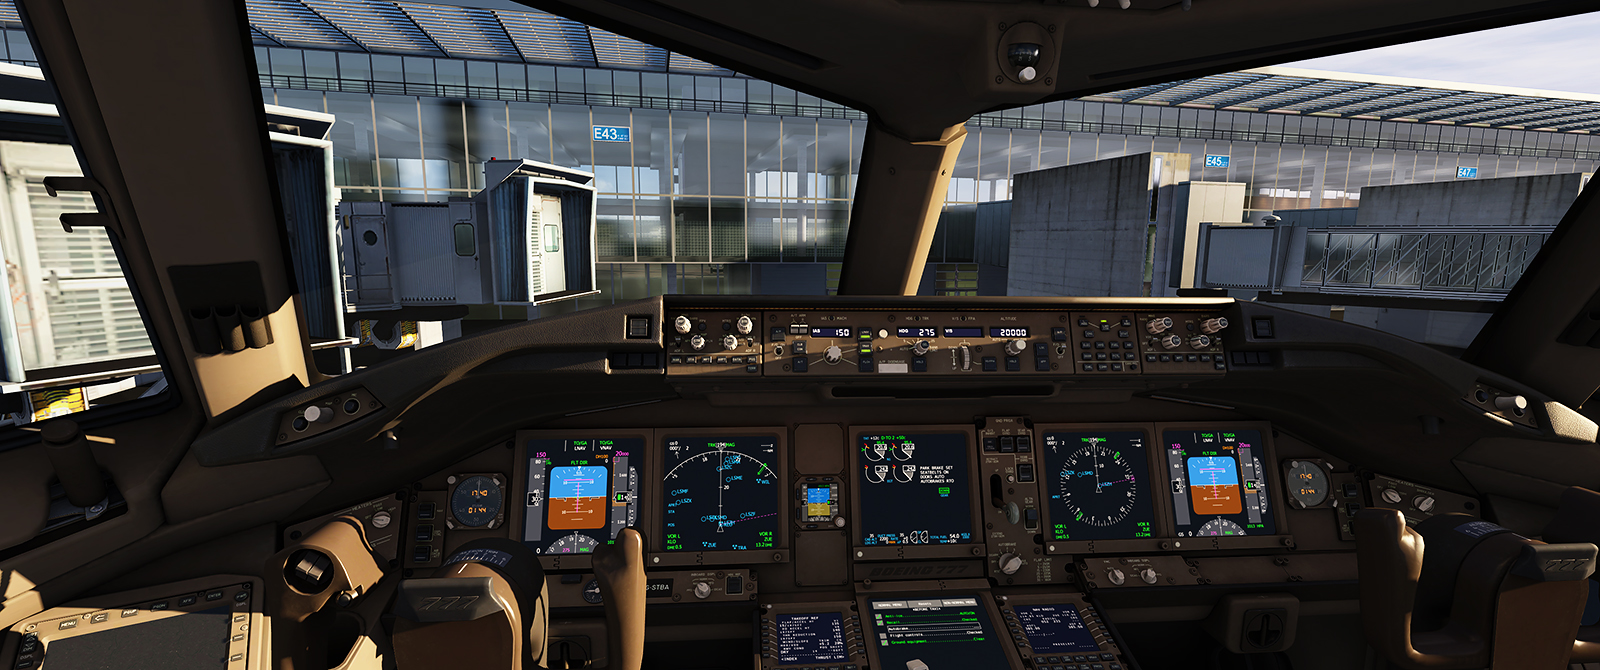 aerofly_fs_2_screenshot_12_20191221-0051